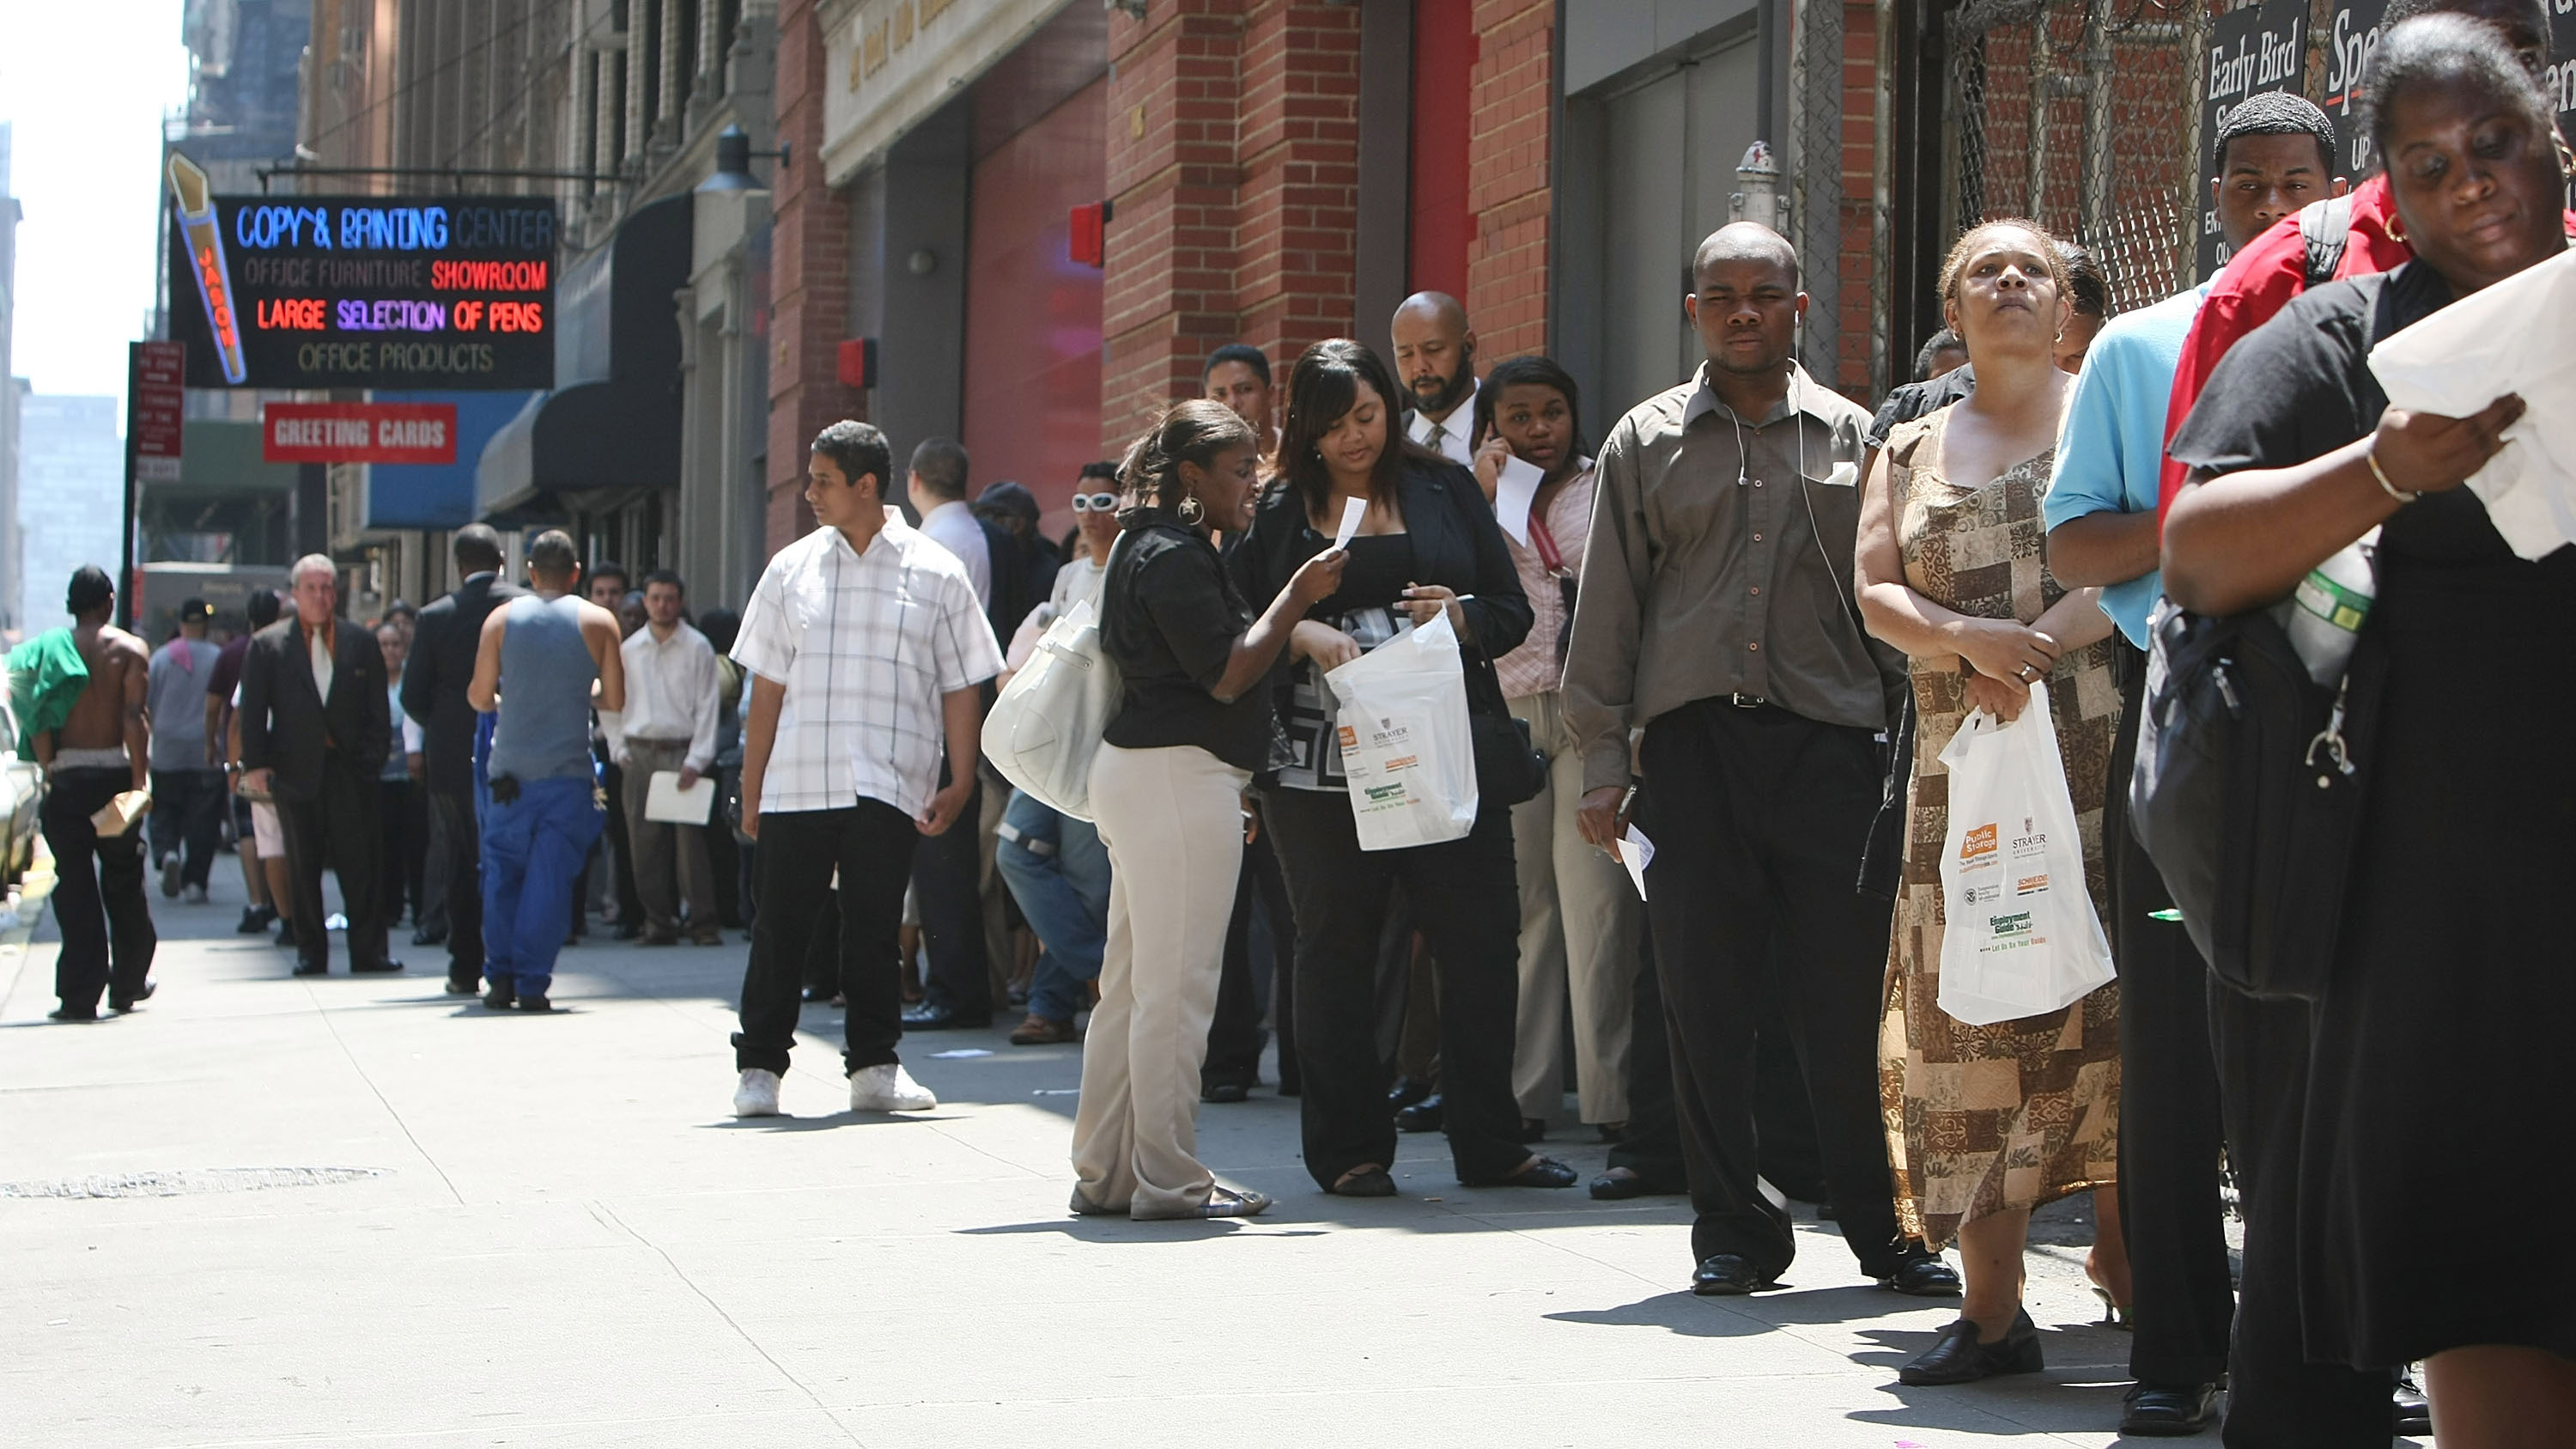 People wait in line to enter the Diversity Job Fair at the Affinia Hotel June 10, 2008 in New York City.